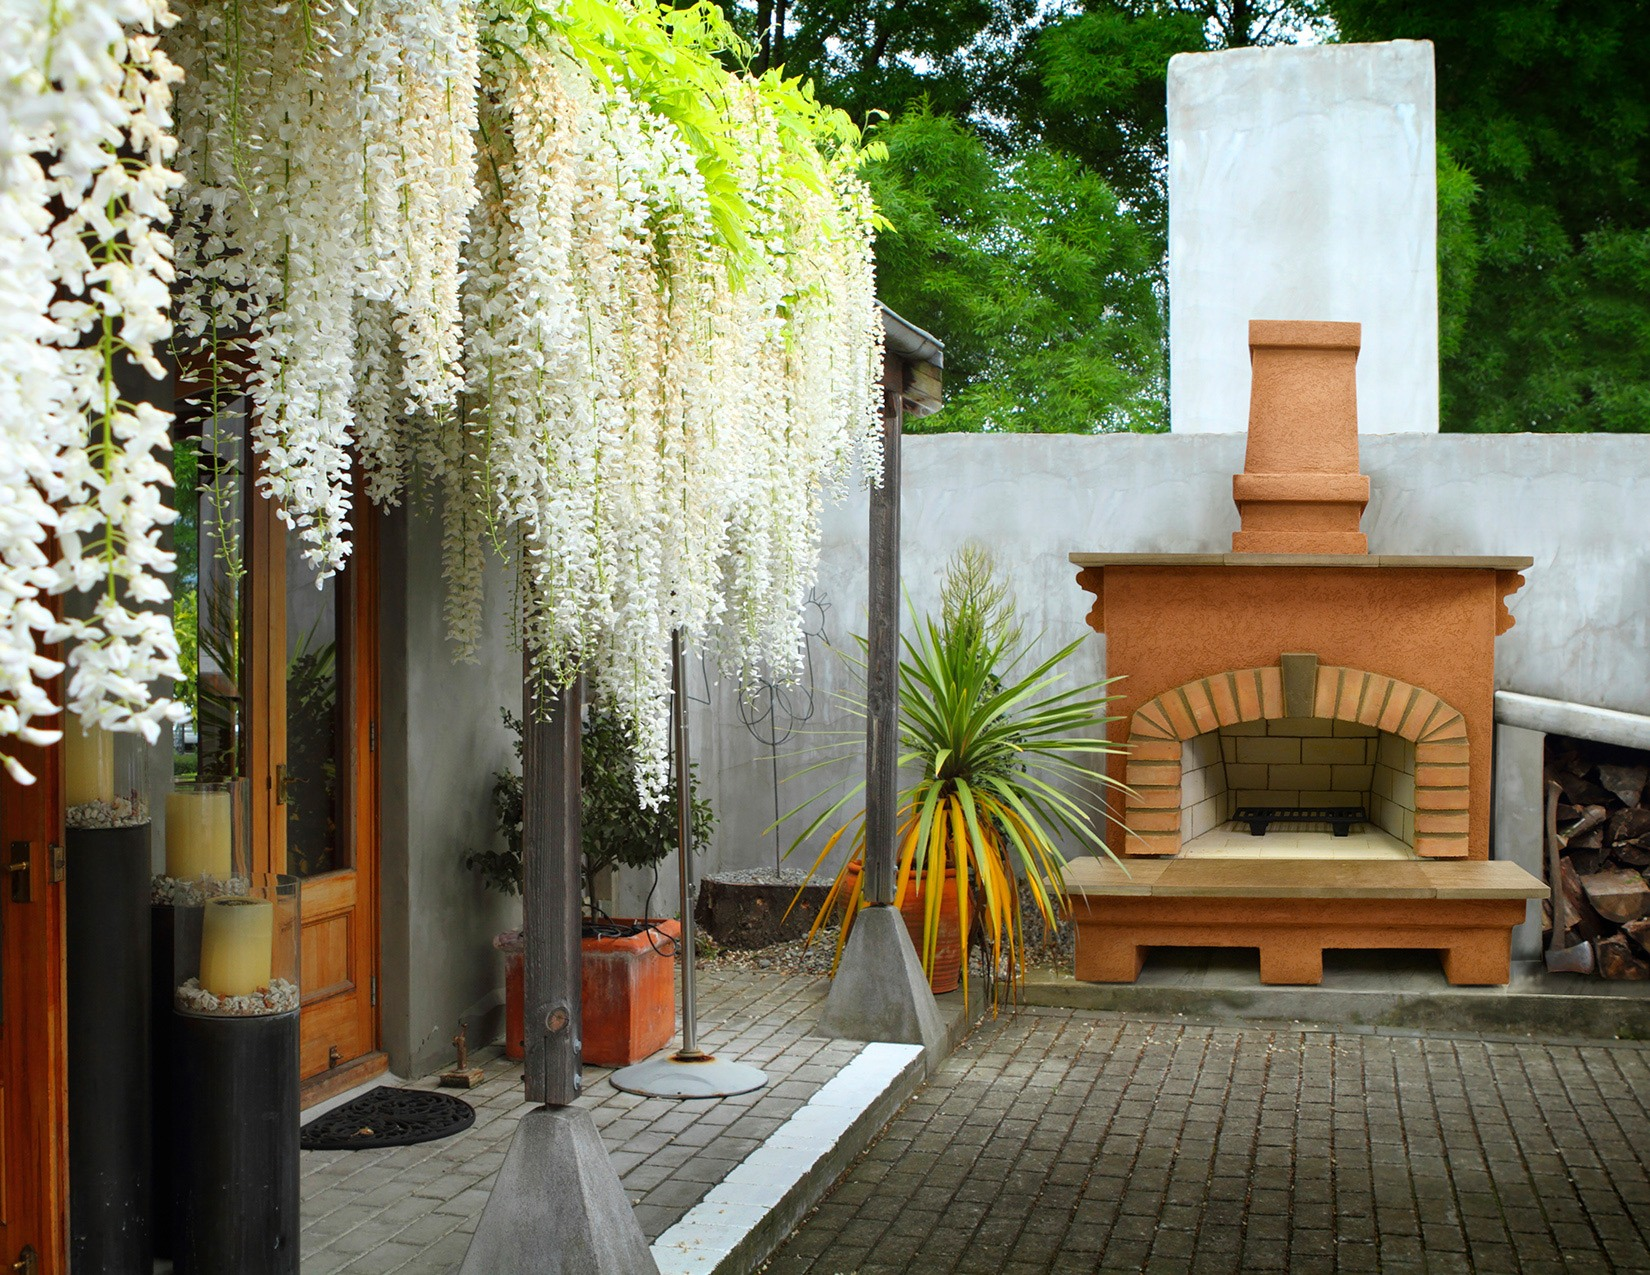 A photo of a tropical environment outdoor patio with a fire place